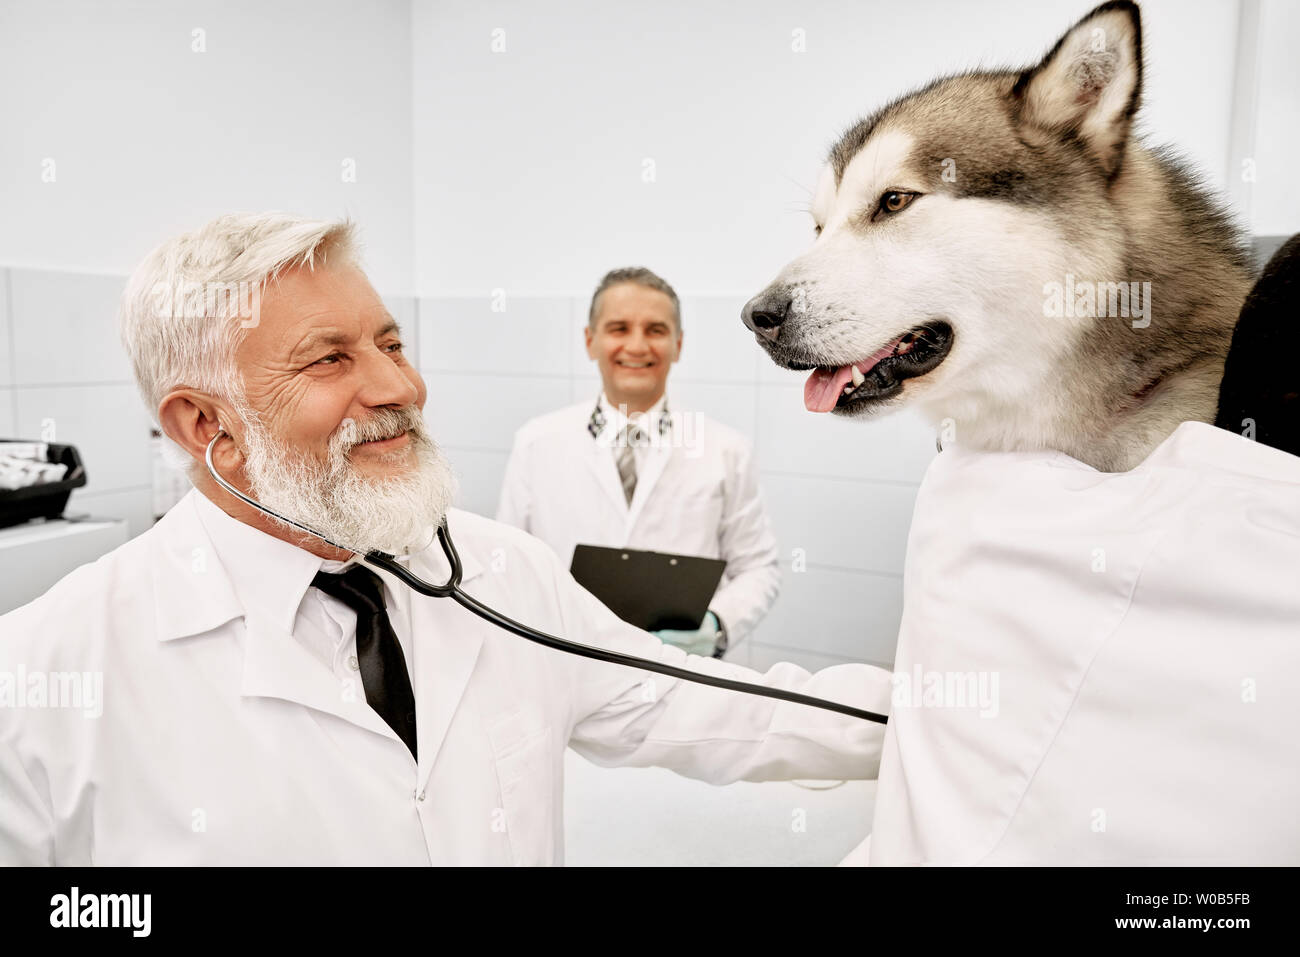 Vet specialist diagnosing and examining big beautiful dog, using stethoscope. Doctor and assistant looking at pet, smiling, wearing in medical white uniform. Doctor holding folder, in clinic. - Stock Image